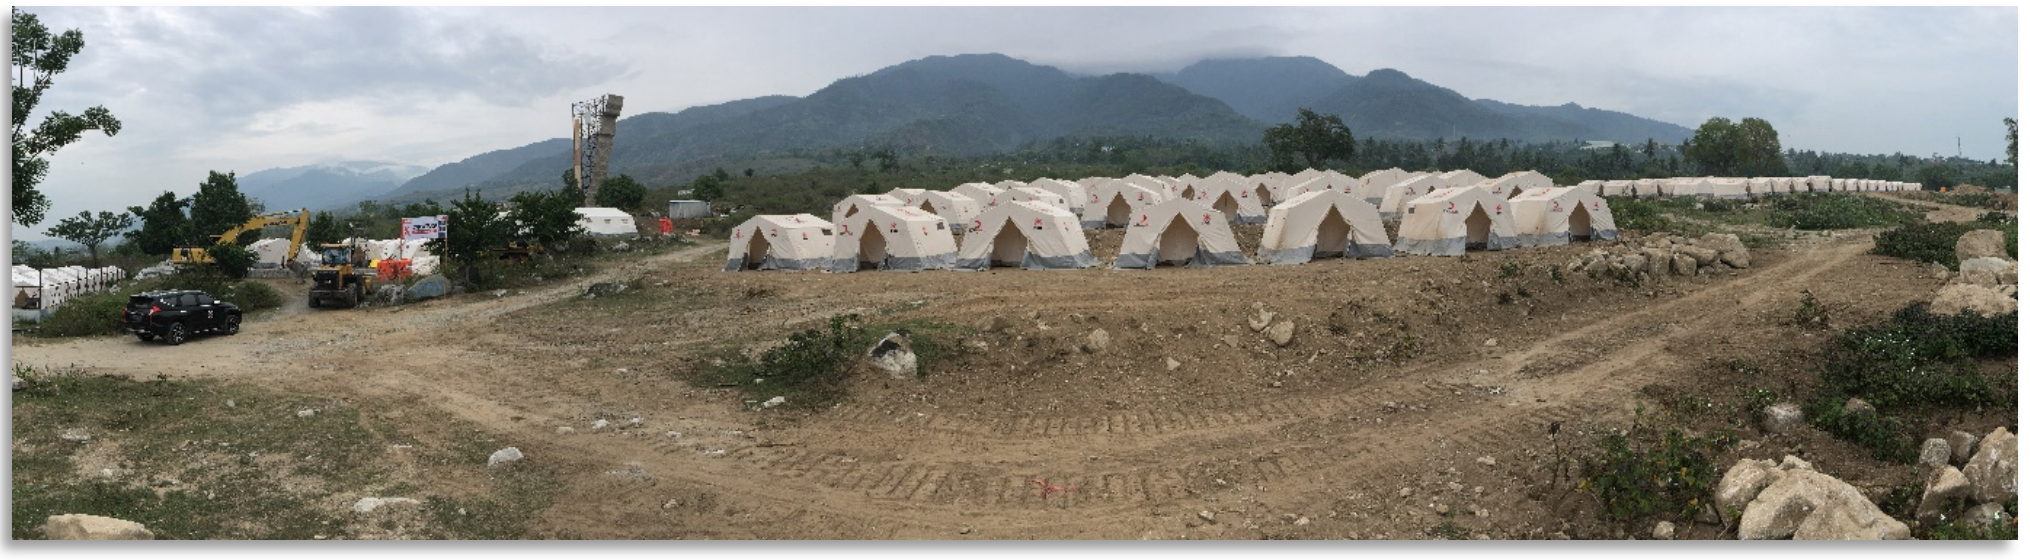 The site pictured above required the removal of large rocks and leveling of the site to accommodate 240 family tents.